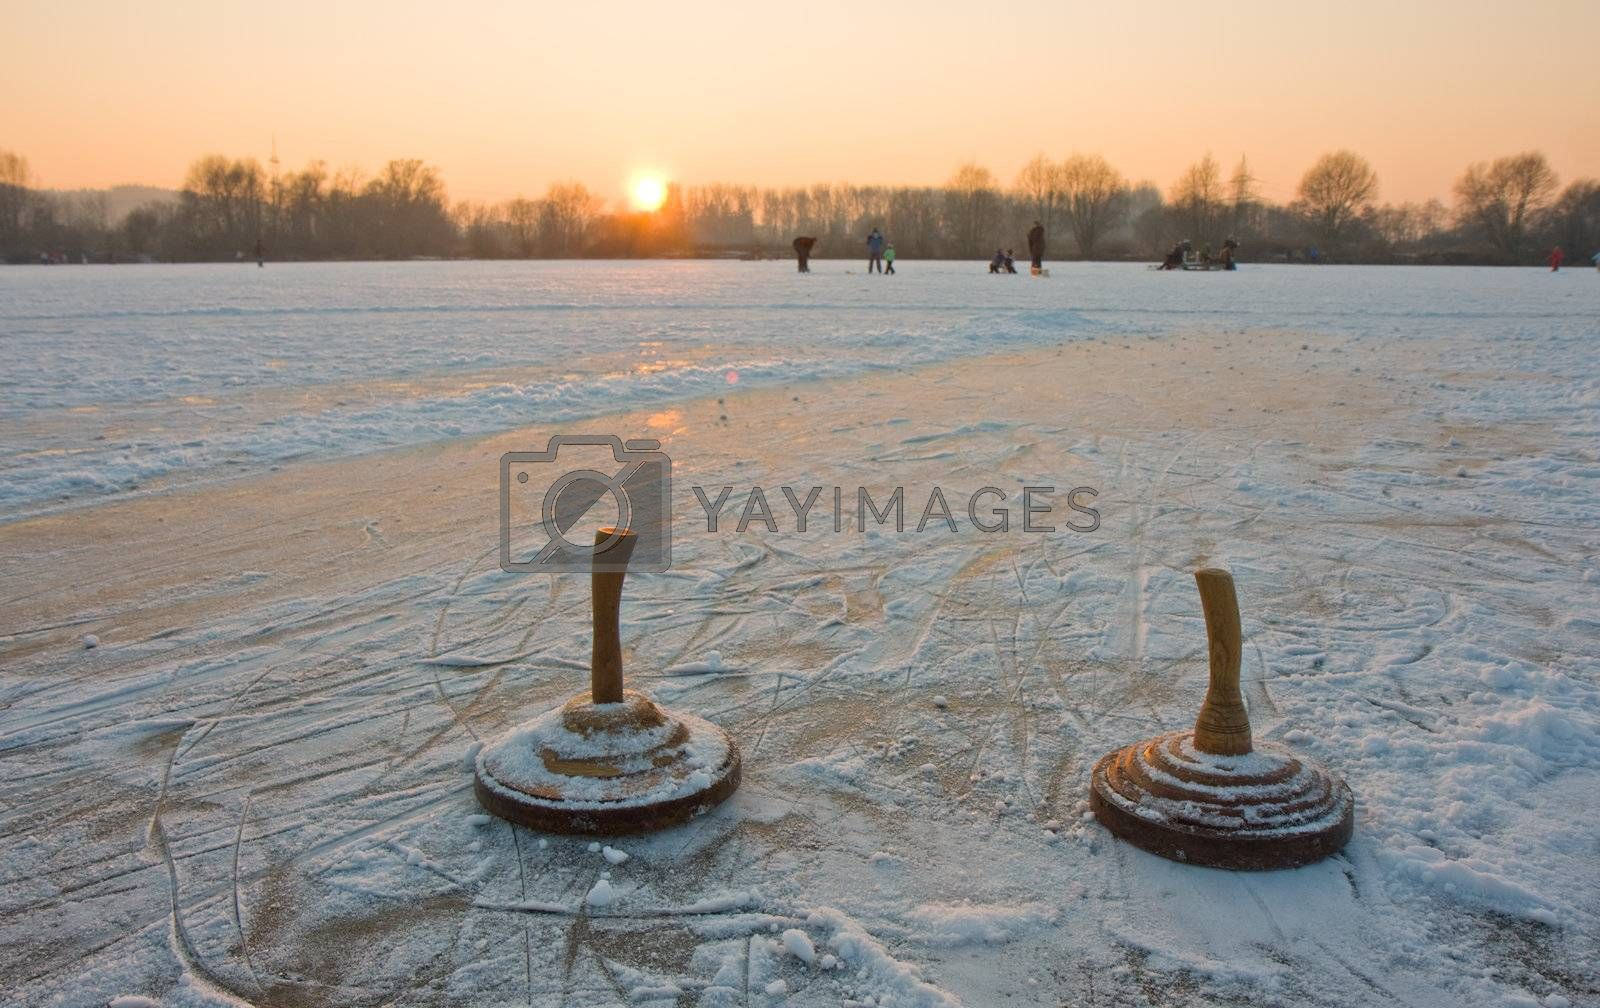 Royalty free image of two curling stones on a frozen lake at sunset by bernjuer